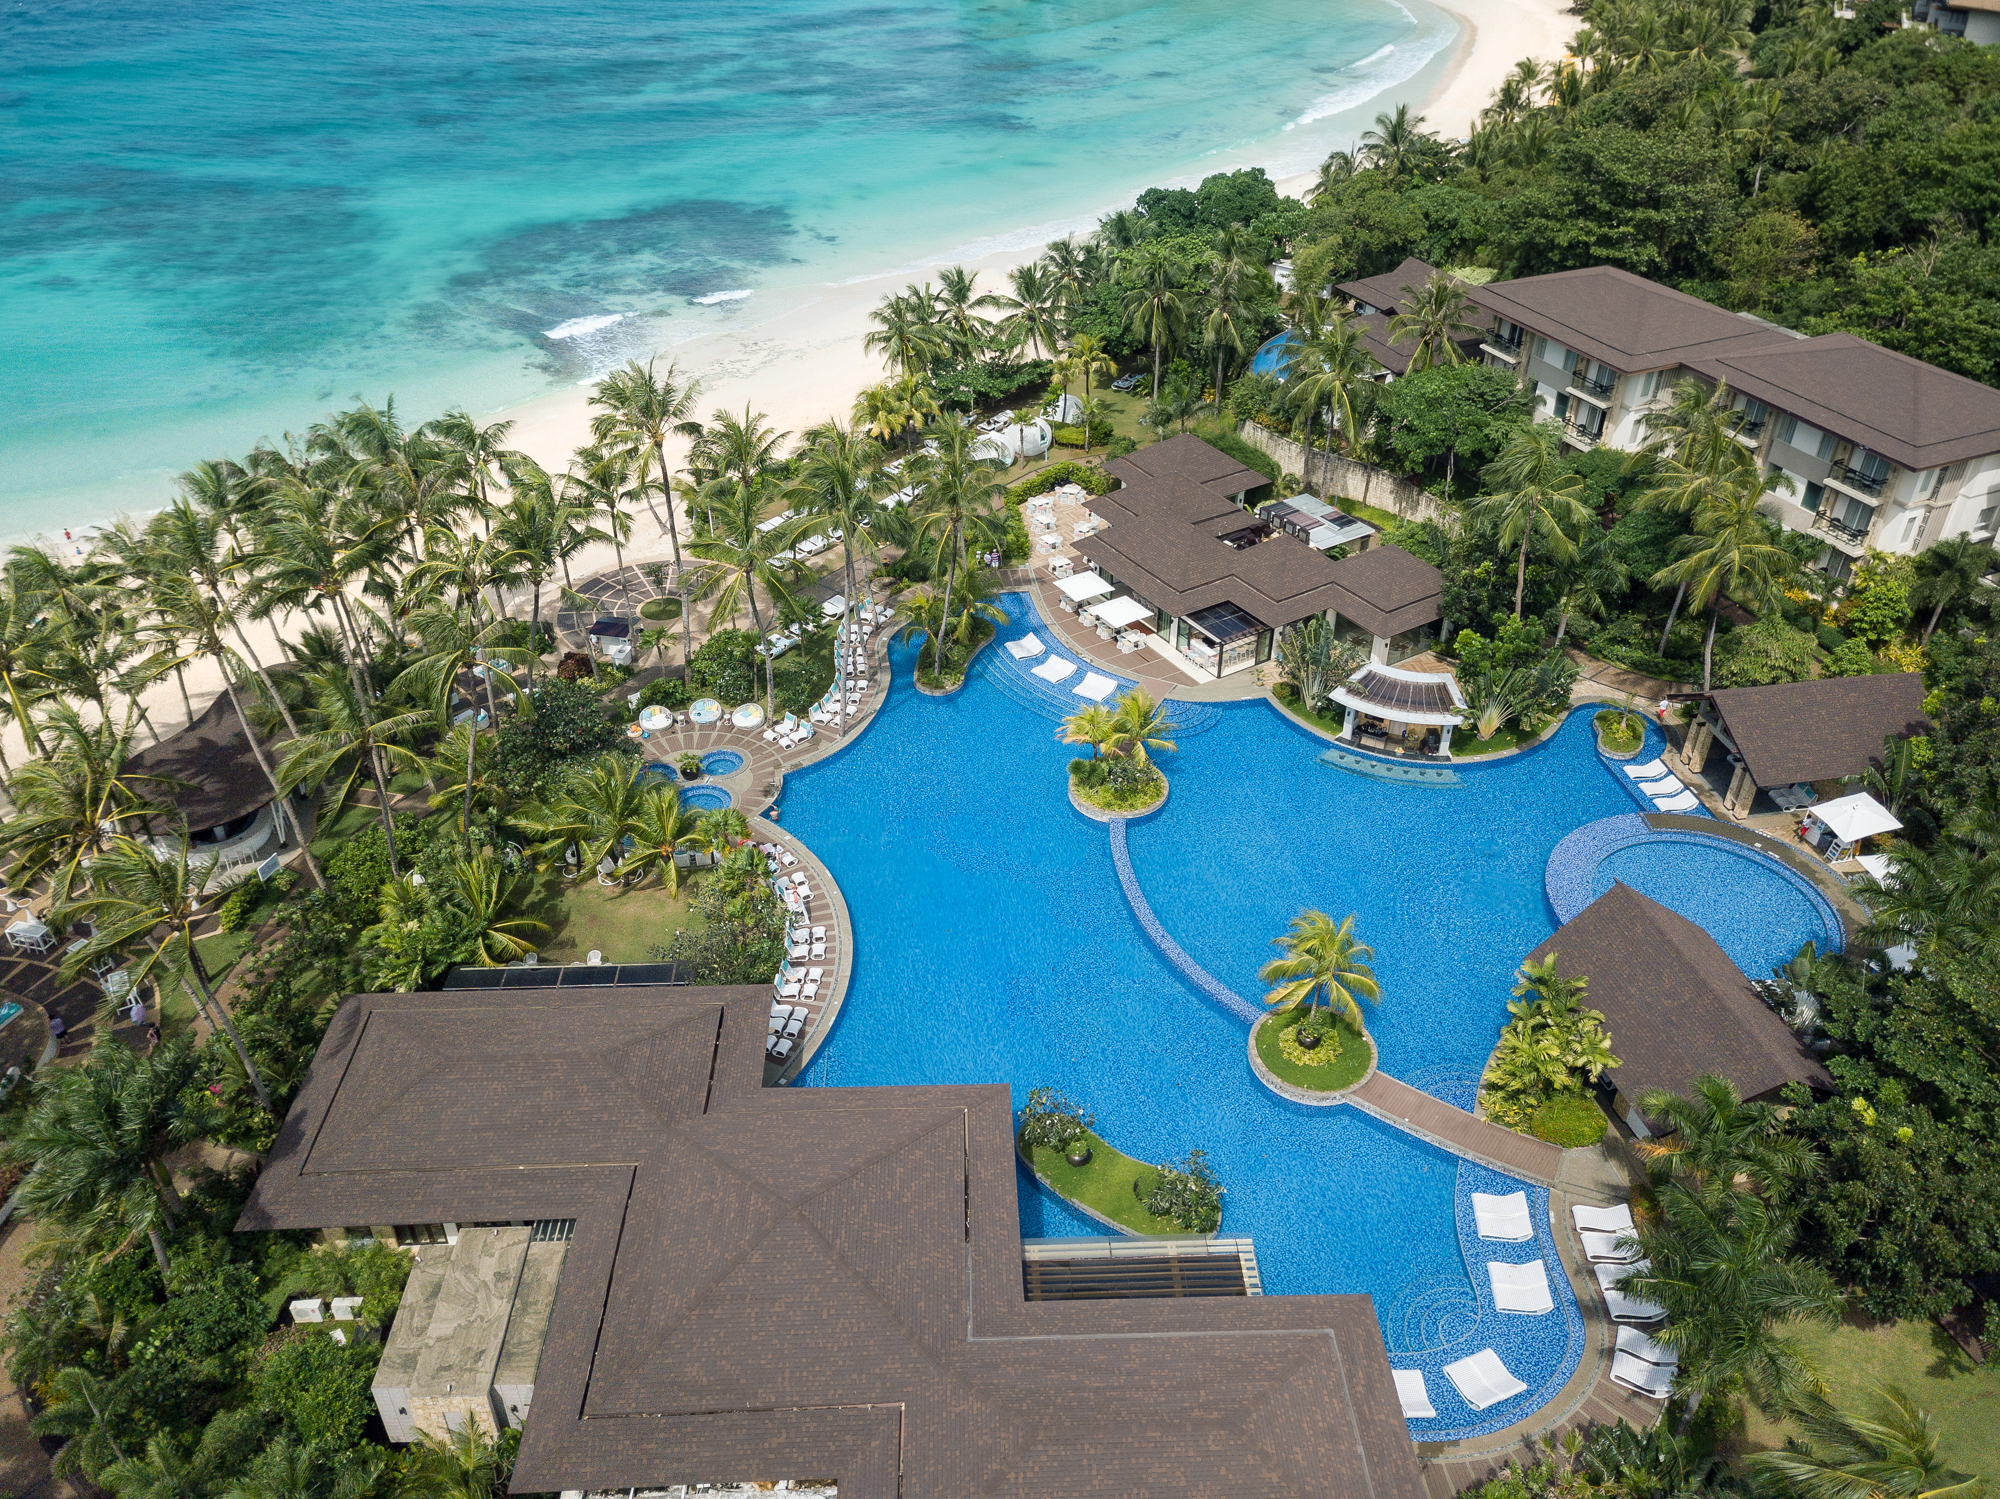 Package Deal to Boracay with Movenpick Resort and Spa & Philippine Airlines for 5 Days & 4 Nights - day 1